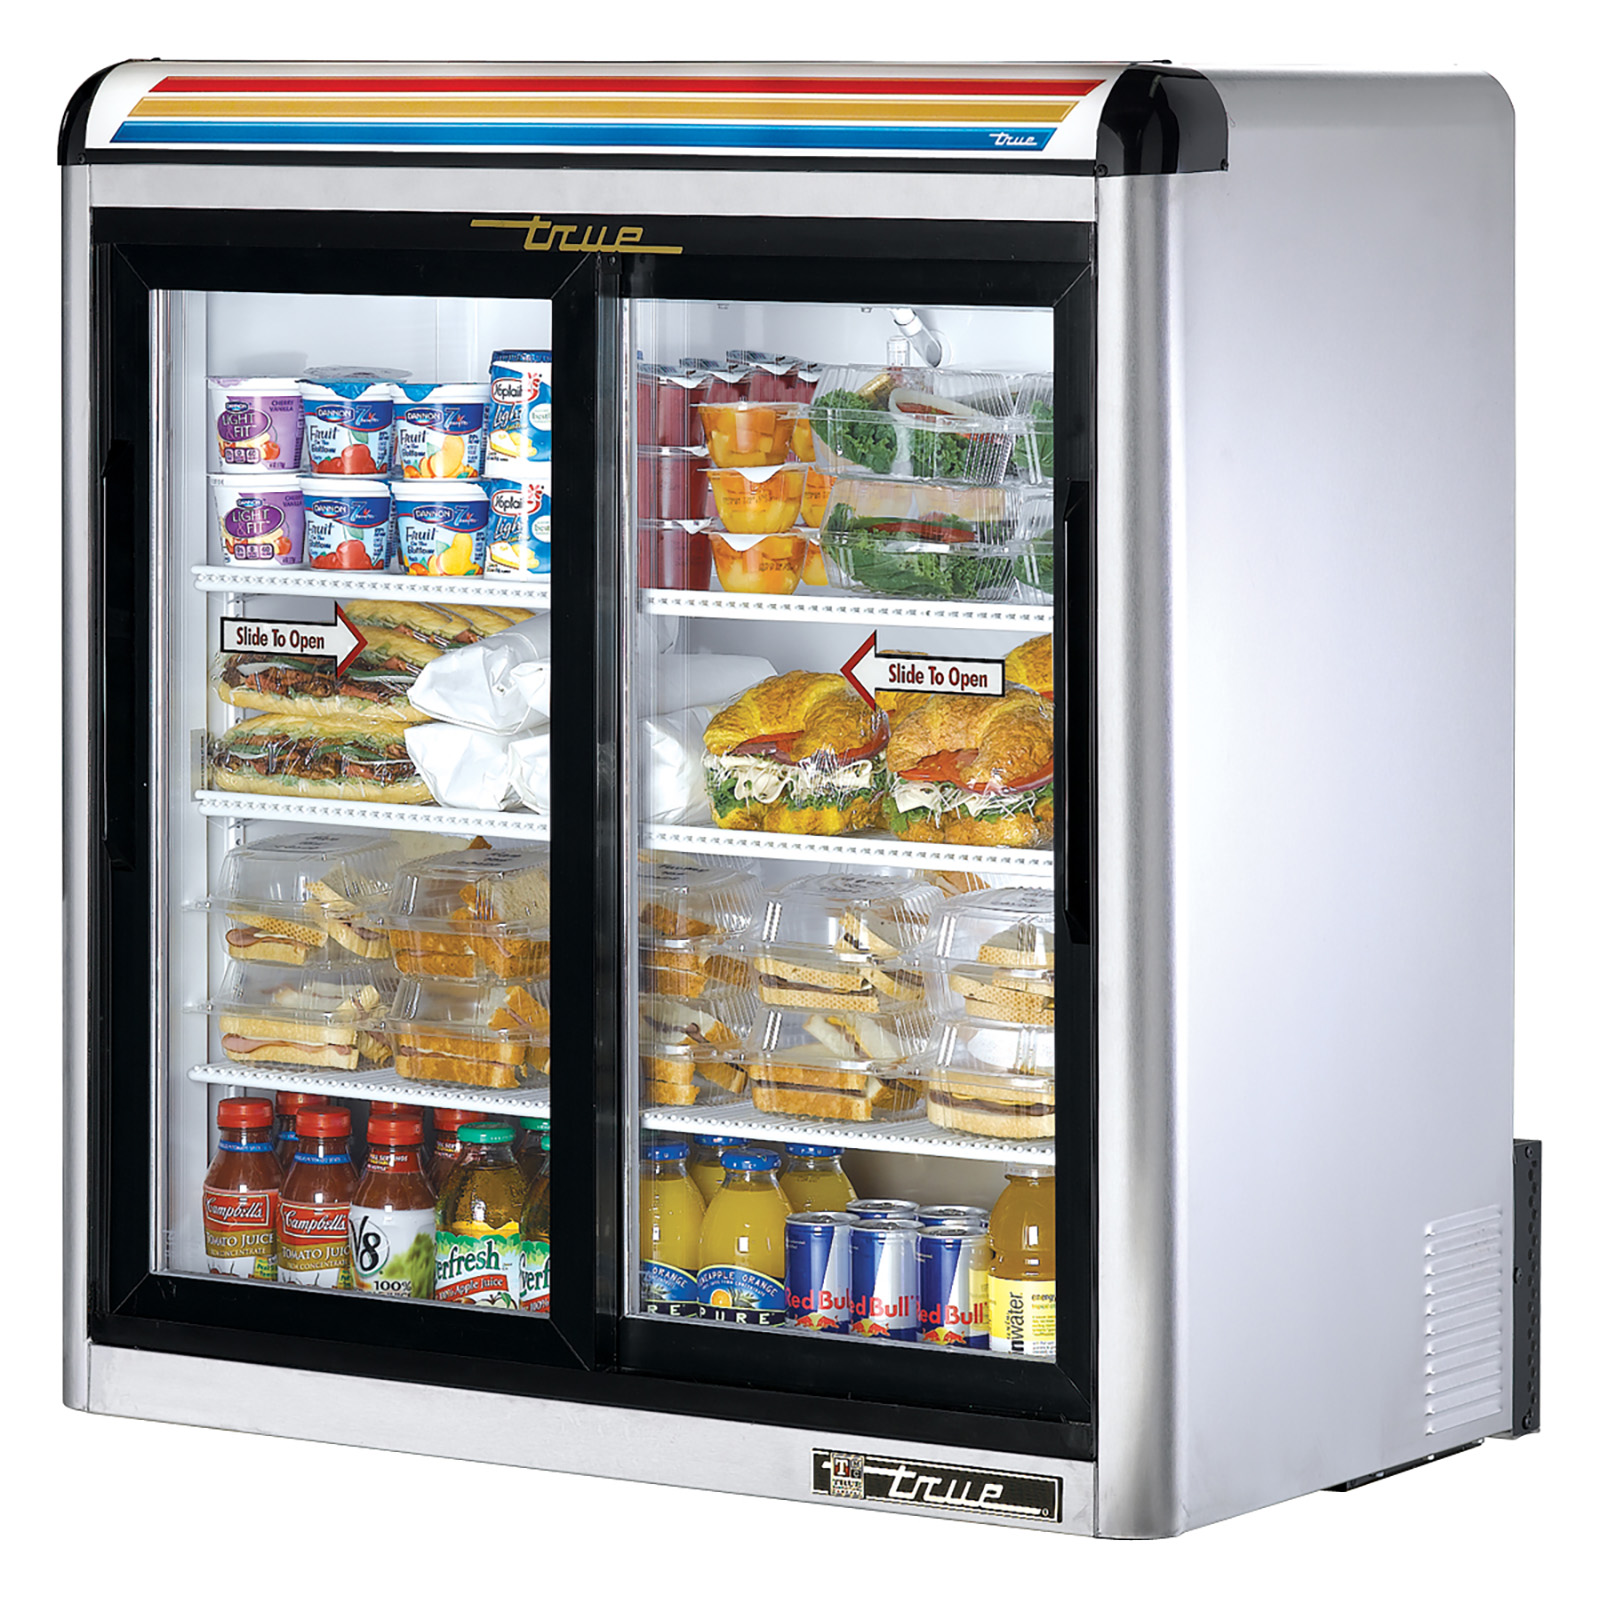 GDM-09-S-LD True - Countertop Refrigerated Merchandiser (2-1/2) shelves